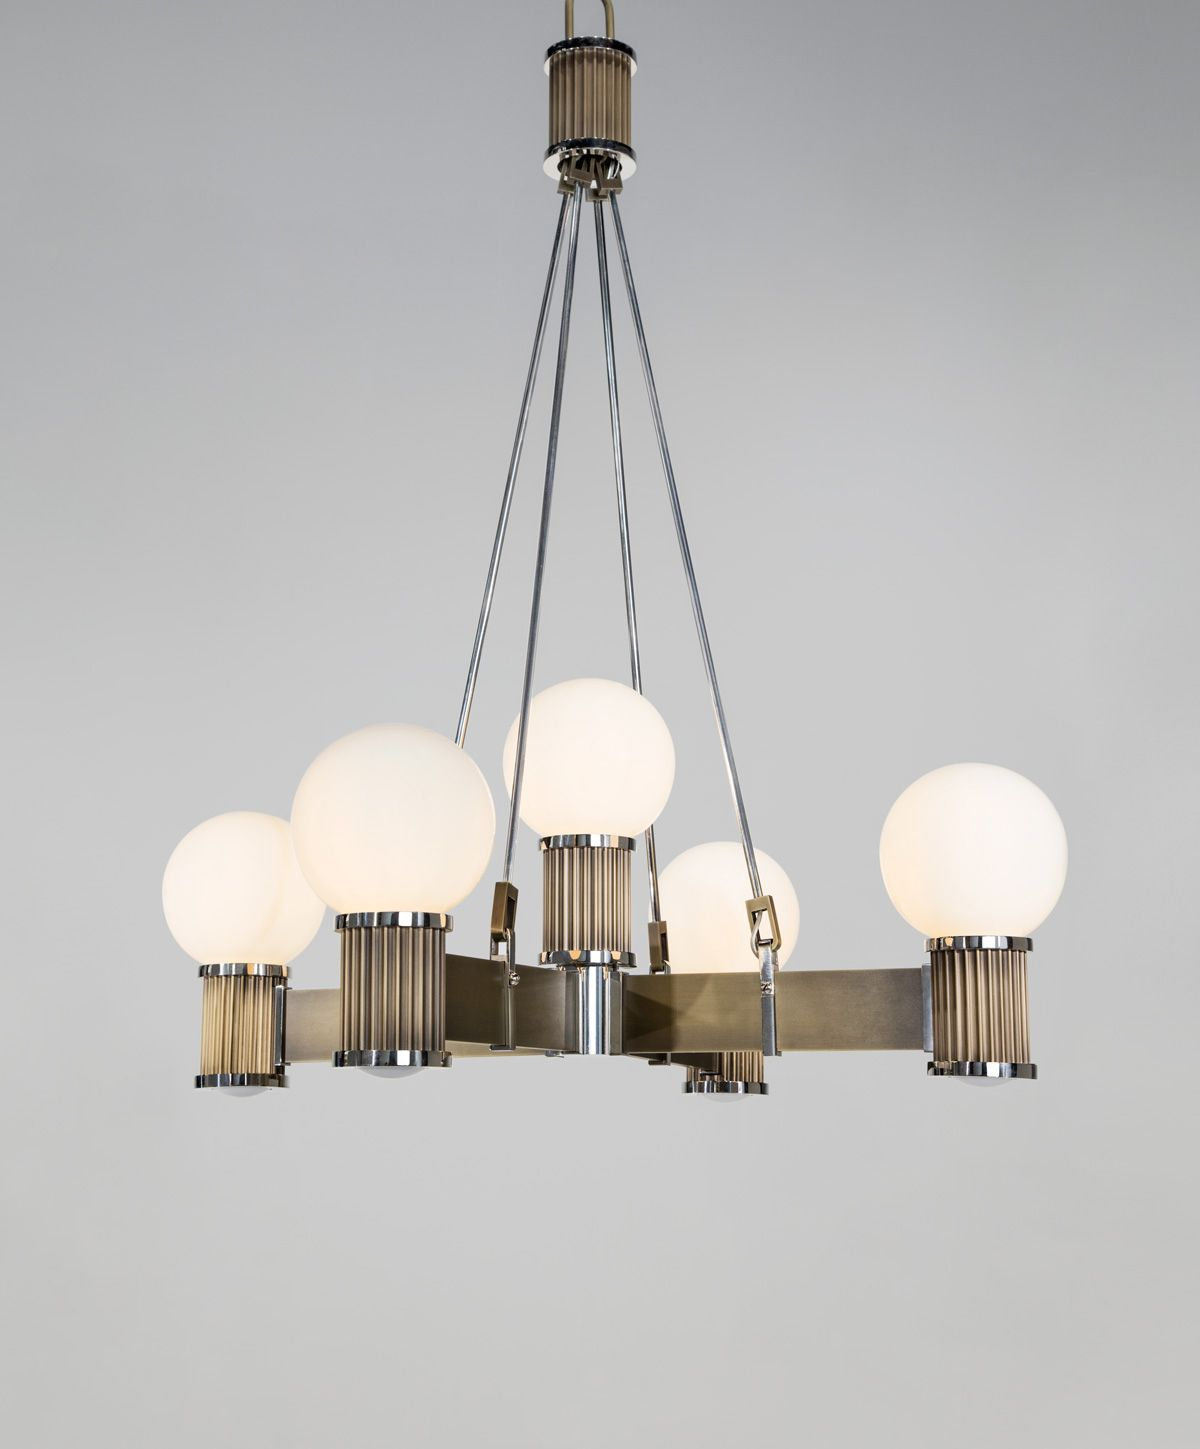 Dining Room Rex Light Fixture From The Urban Electric Co